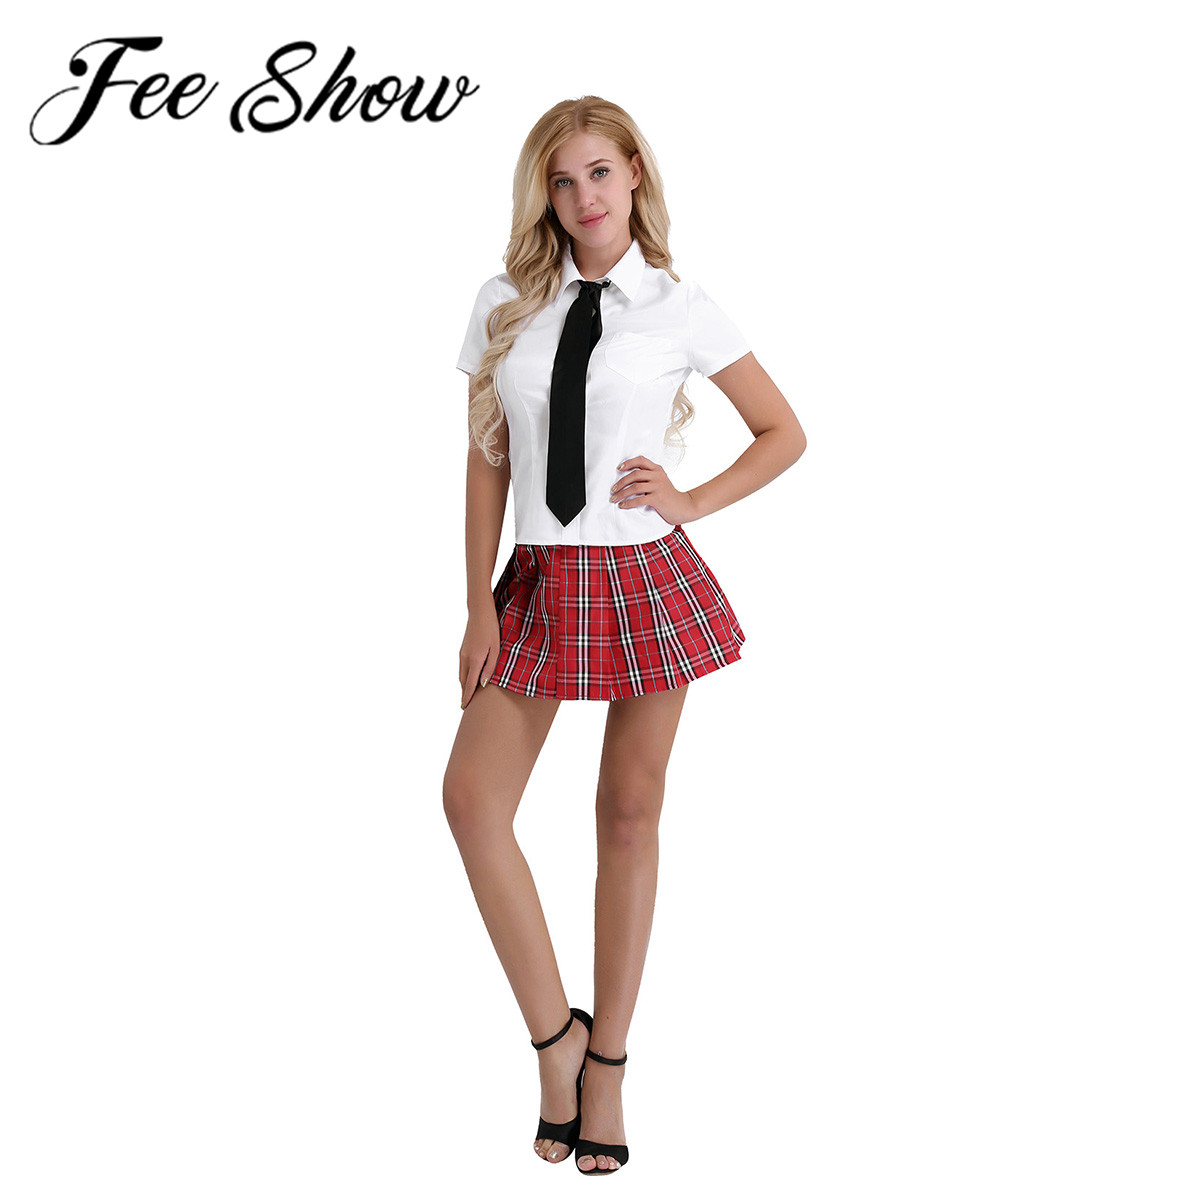 Women School Girl Outfits Fancy Dress Cosplay Costume Shirt with Plaid Skirt Tie